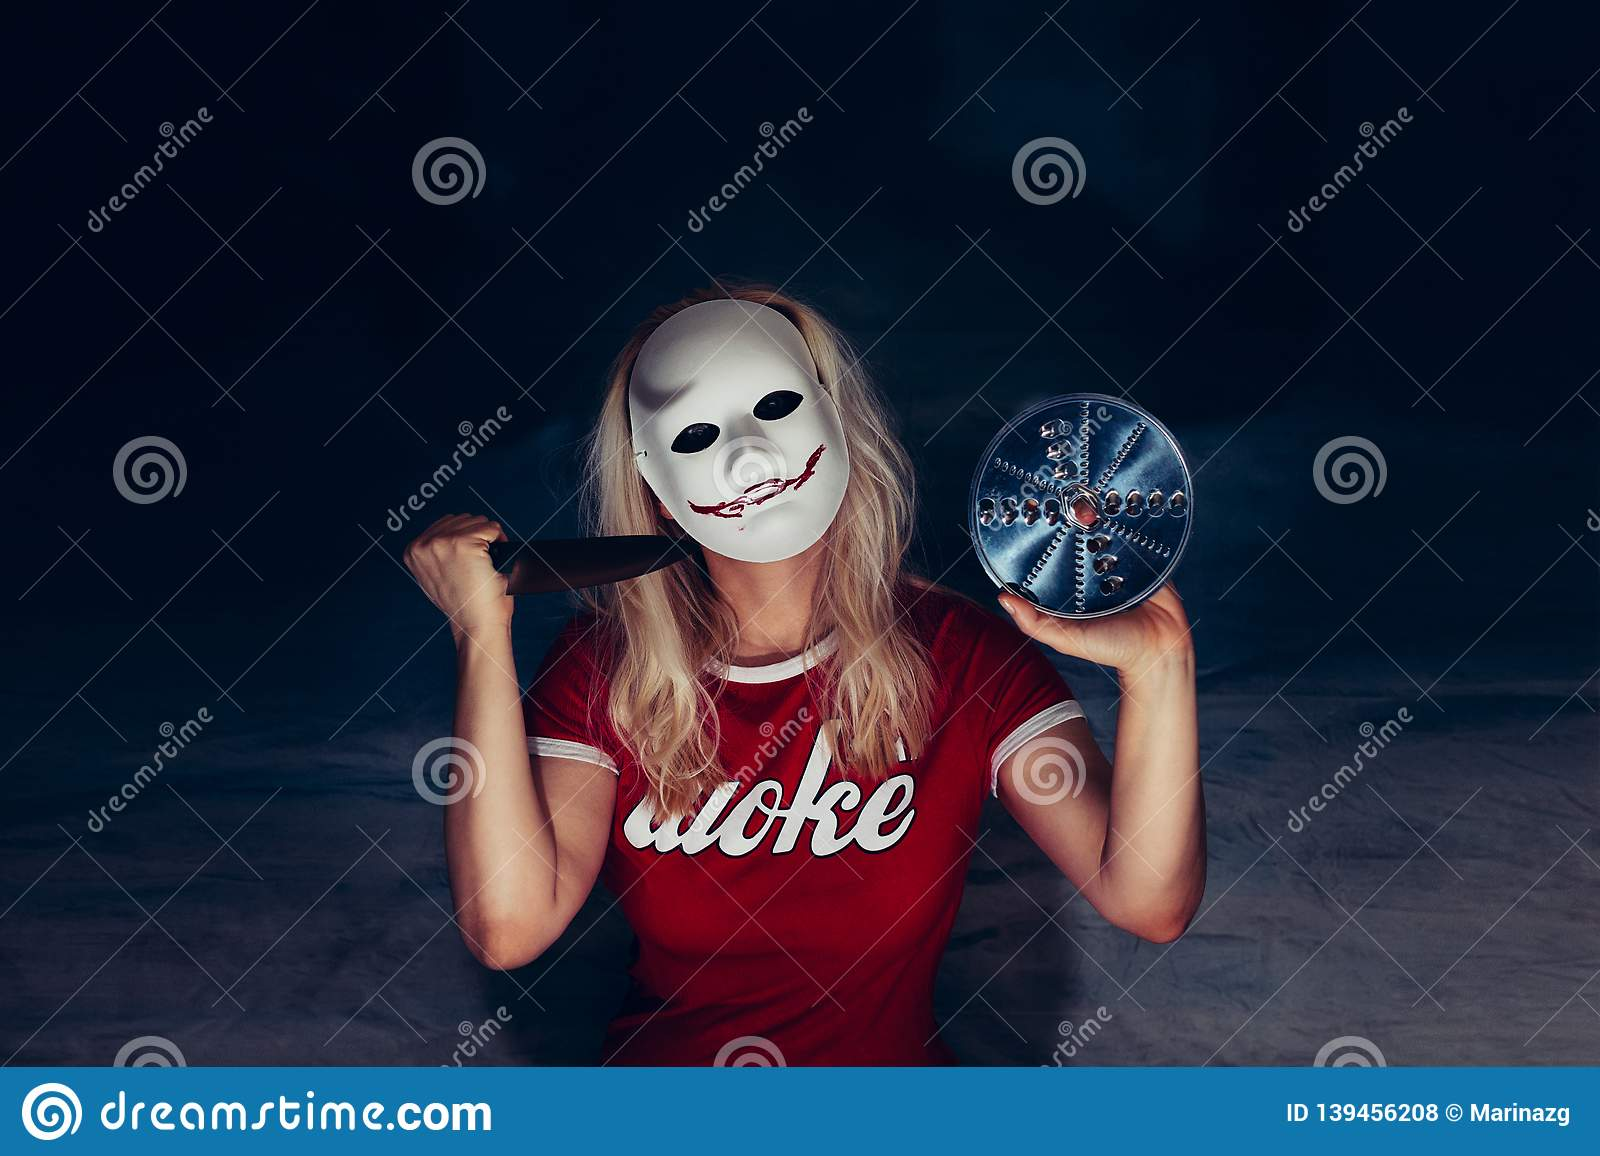 Blonde woman under white mask with spooky bloody smile, holding knife